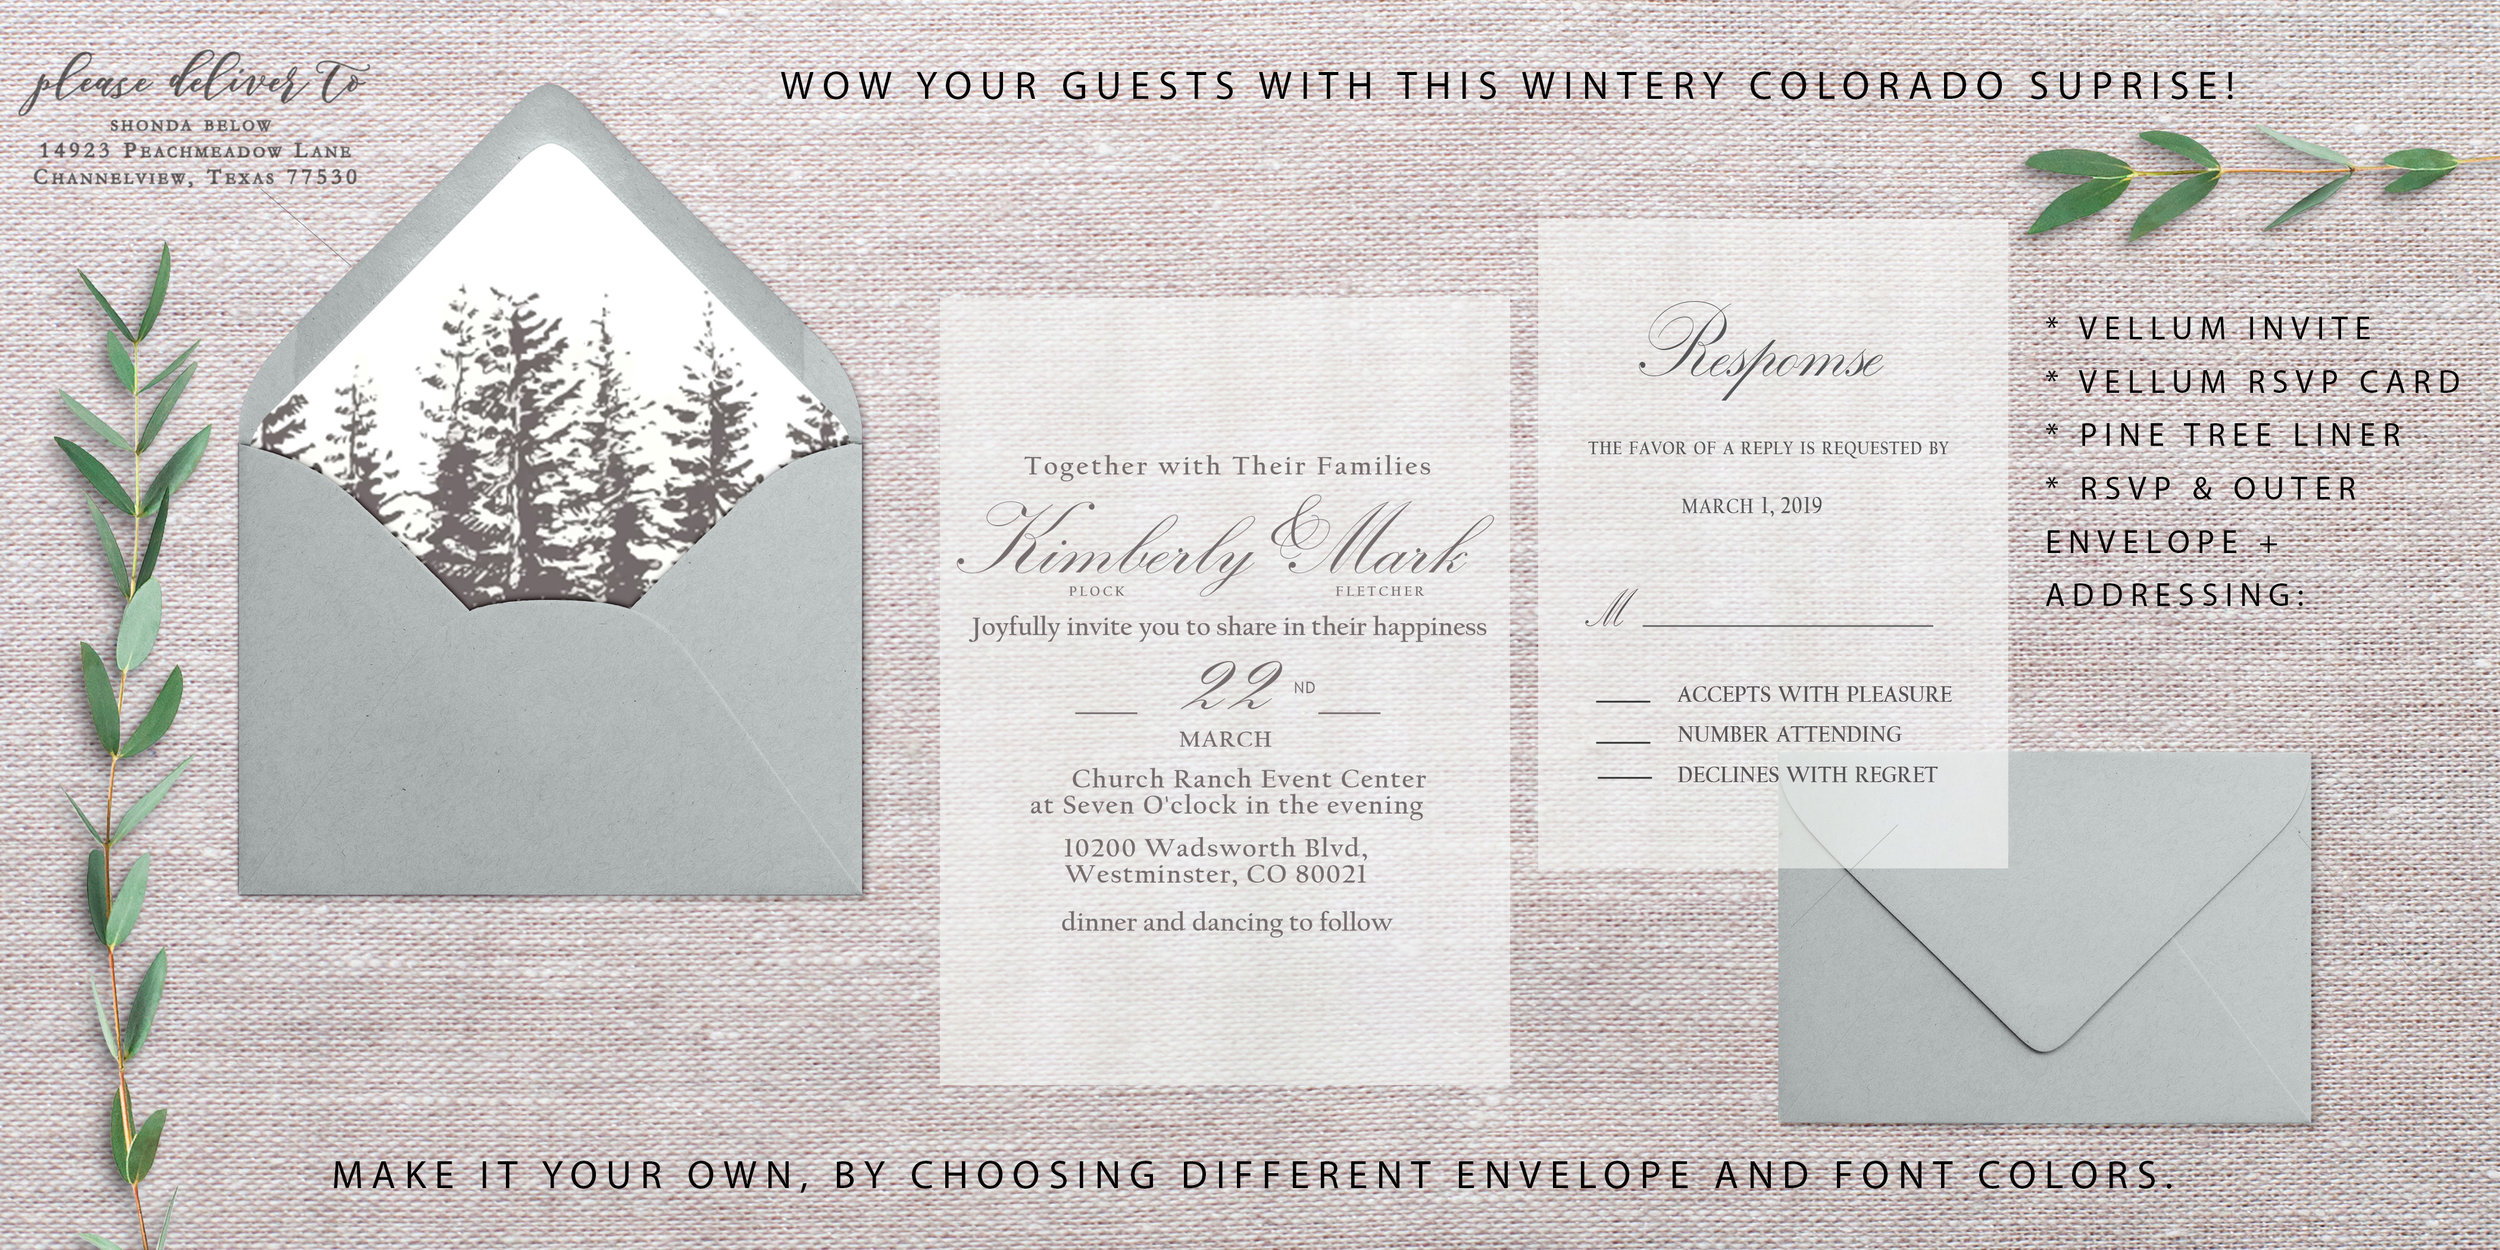 Added the descriptions/notes to the display image. Also changed the envelope color scheme to a more wintery theme using a soft teal color. However, brides can still swamp out envelope and font colors on this one!    Liner = $1.90 (discounted) Addressing on both = $1.20 (discounted) Envelope A7 = $0.50 (discounted) Envelope A2 = $0.45 (discounted) Vellum invite = $1.50 Vellum RSVP = $1.40      Total: $6.95